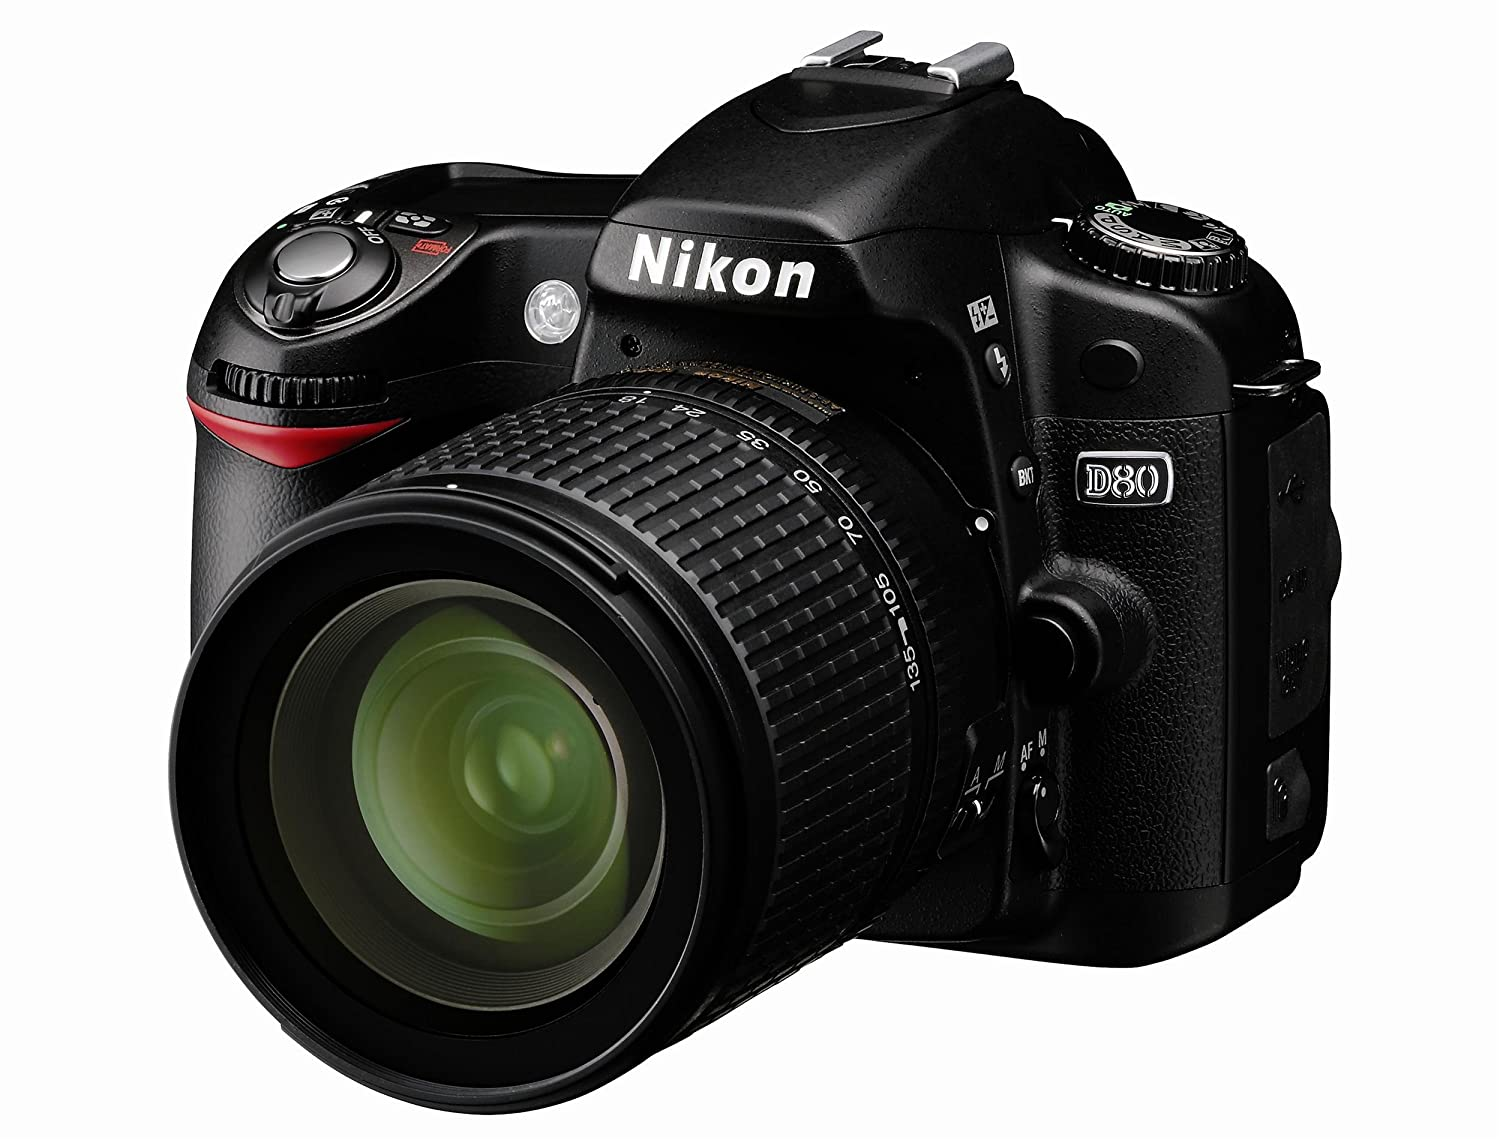 Amazon.com : Nikon D80 10.2MP Digital SLR Camera Kit with 18-135mm ...